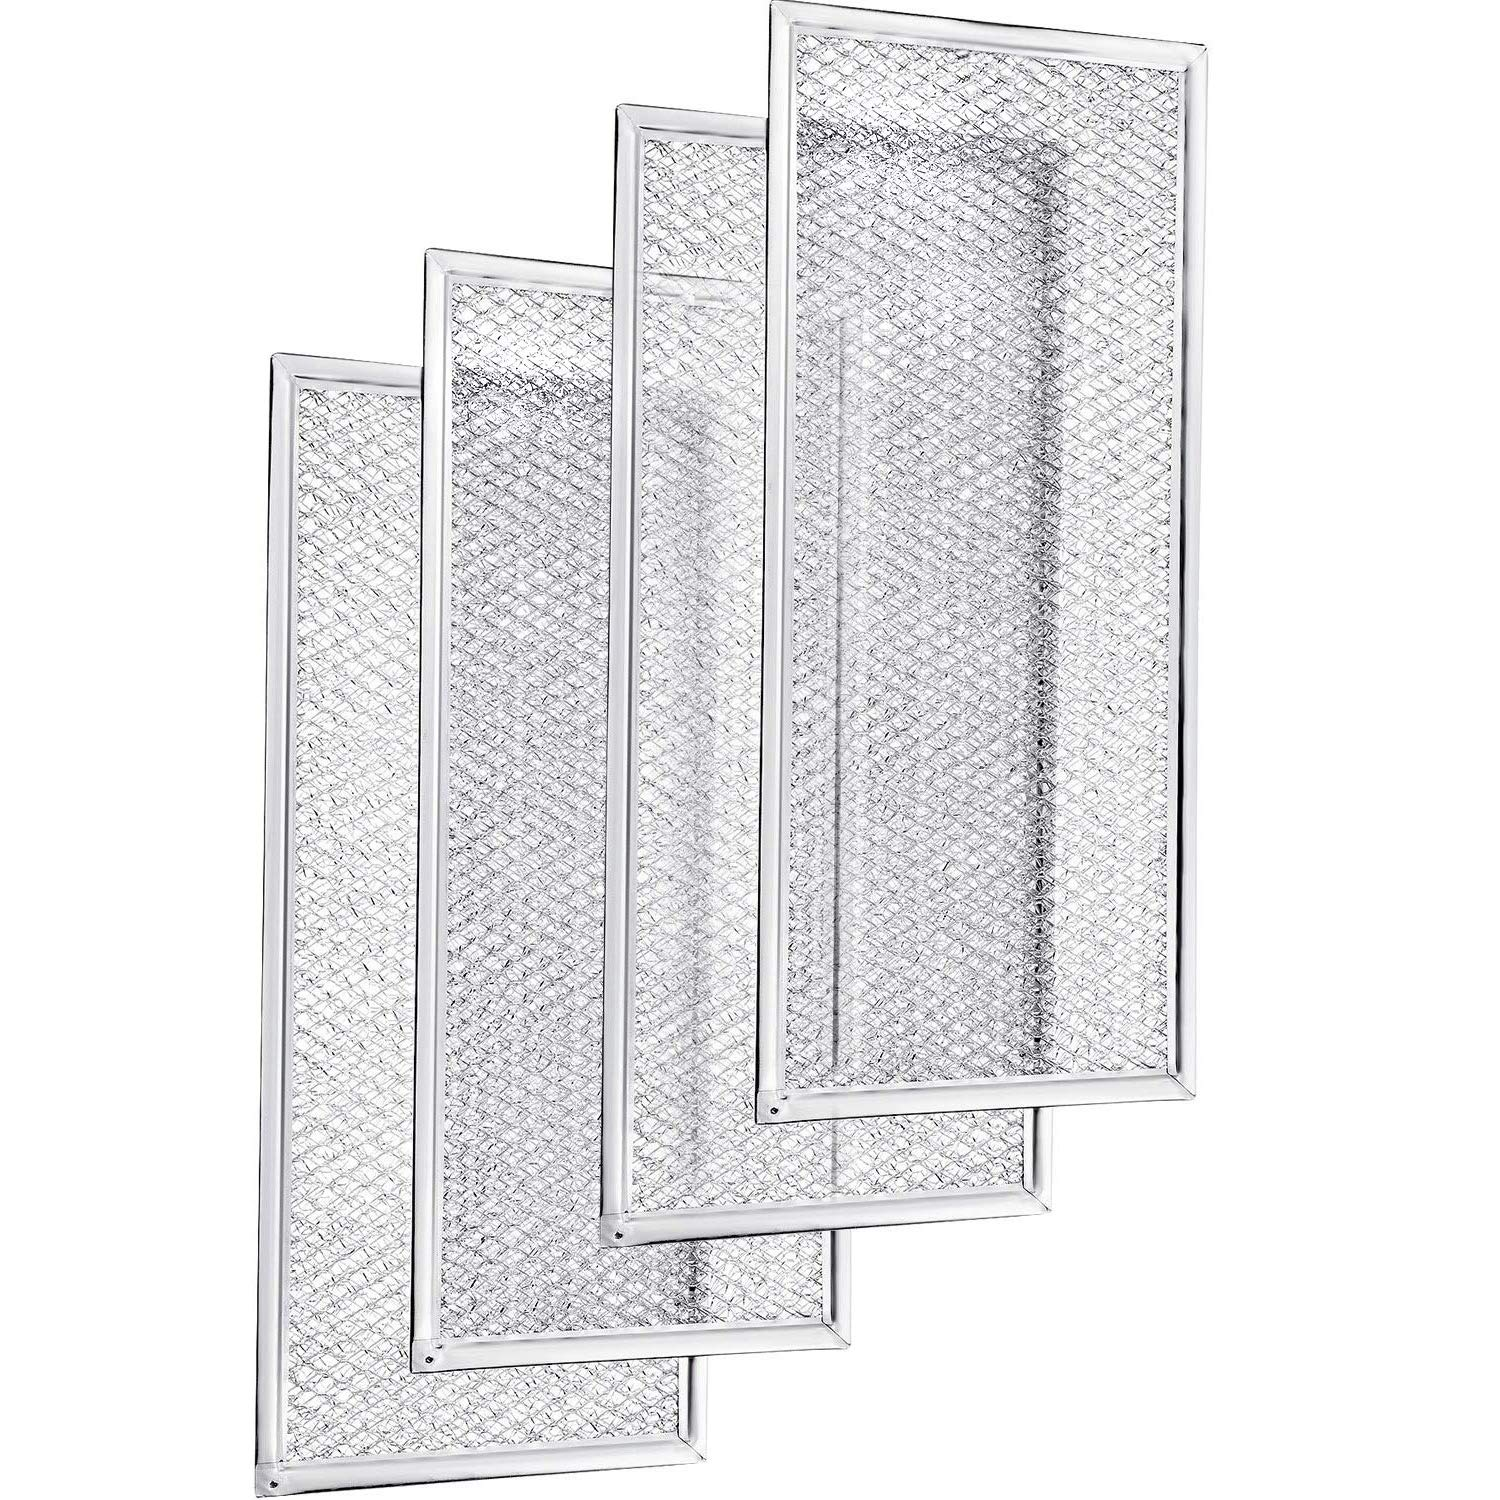 4 Pack W10208631A Microwave Filters Aluminum Mesh Microwave Oven Grease Filter Microwave Replacement for W10208631, W10208631RP, AP5617368, 2304686, AH3650910, EA3650910 (12-15/16 x 5-3/4 x 1/16 Inch)